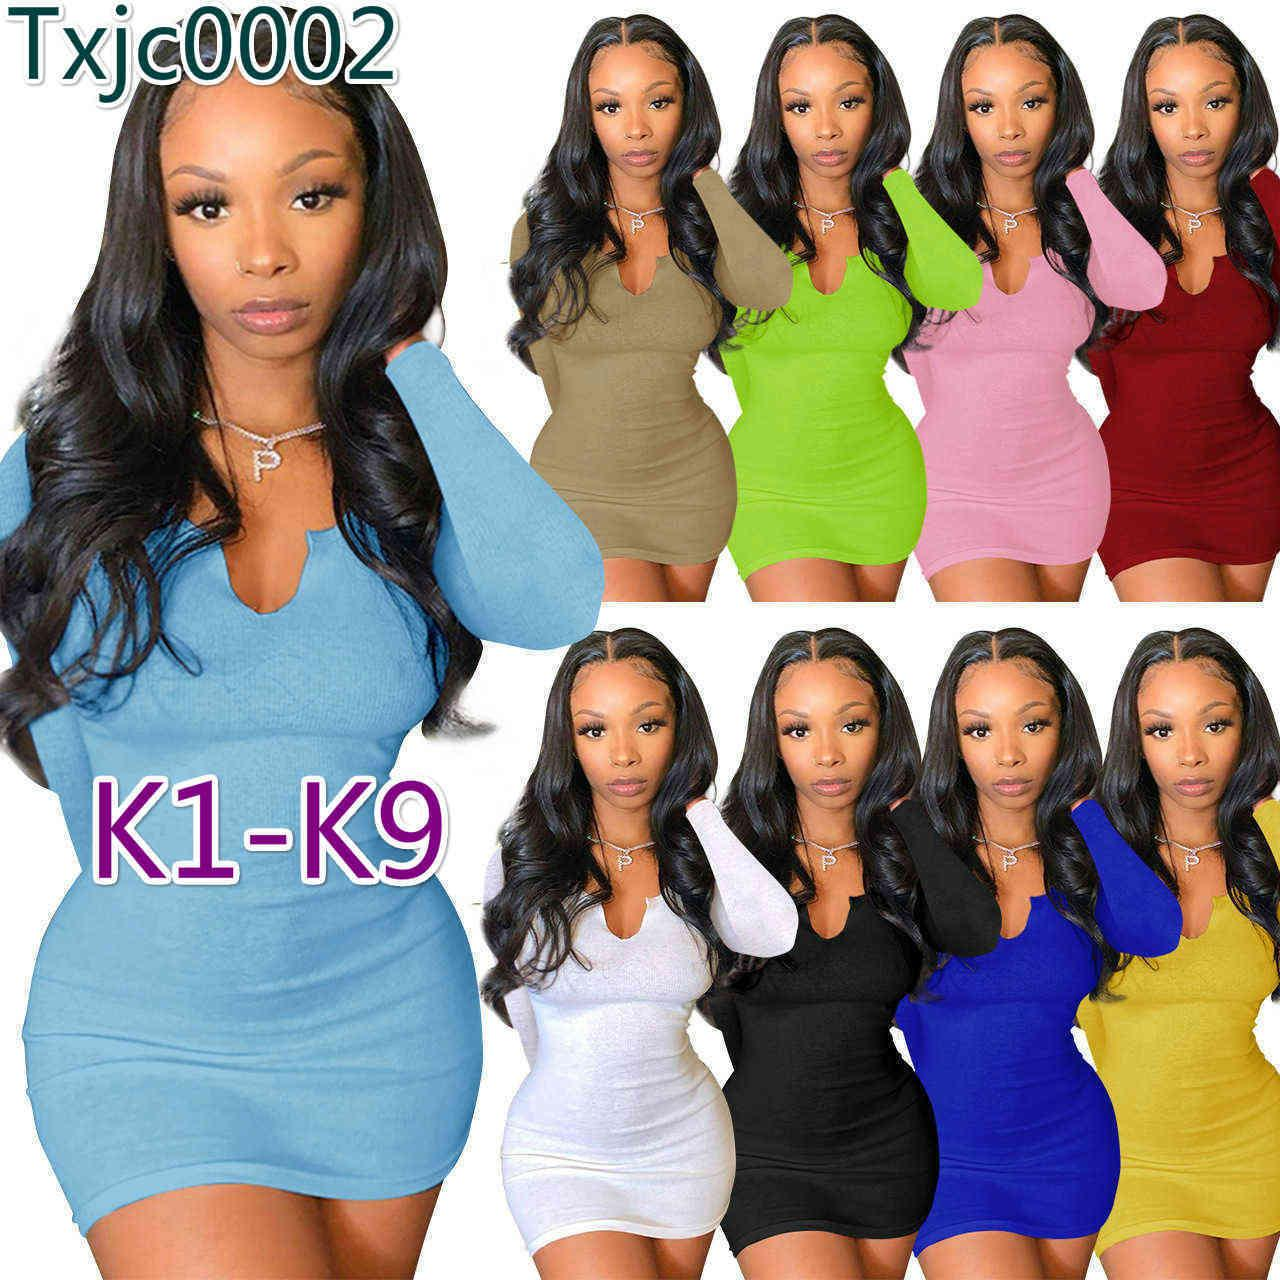 Women Dress Designer Long Maxi Dresses Off Shoulder Bandeau Casual Tight High Stretch Midi Dress Solid Colour Sexy Bodycon Skirt 91 Styles